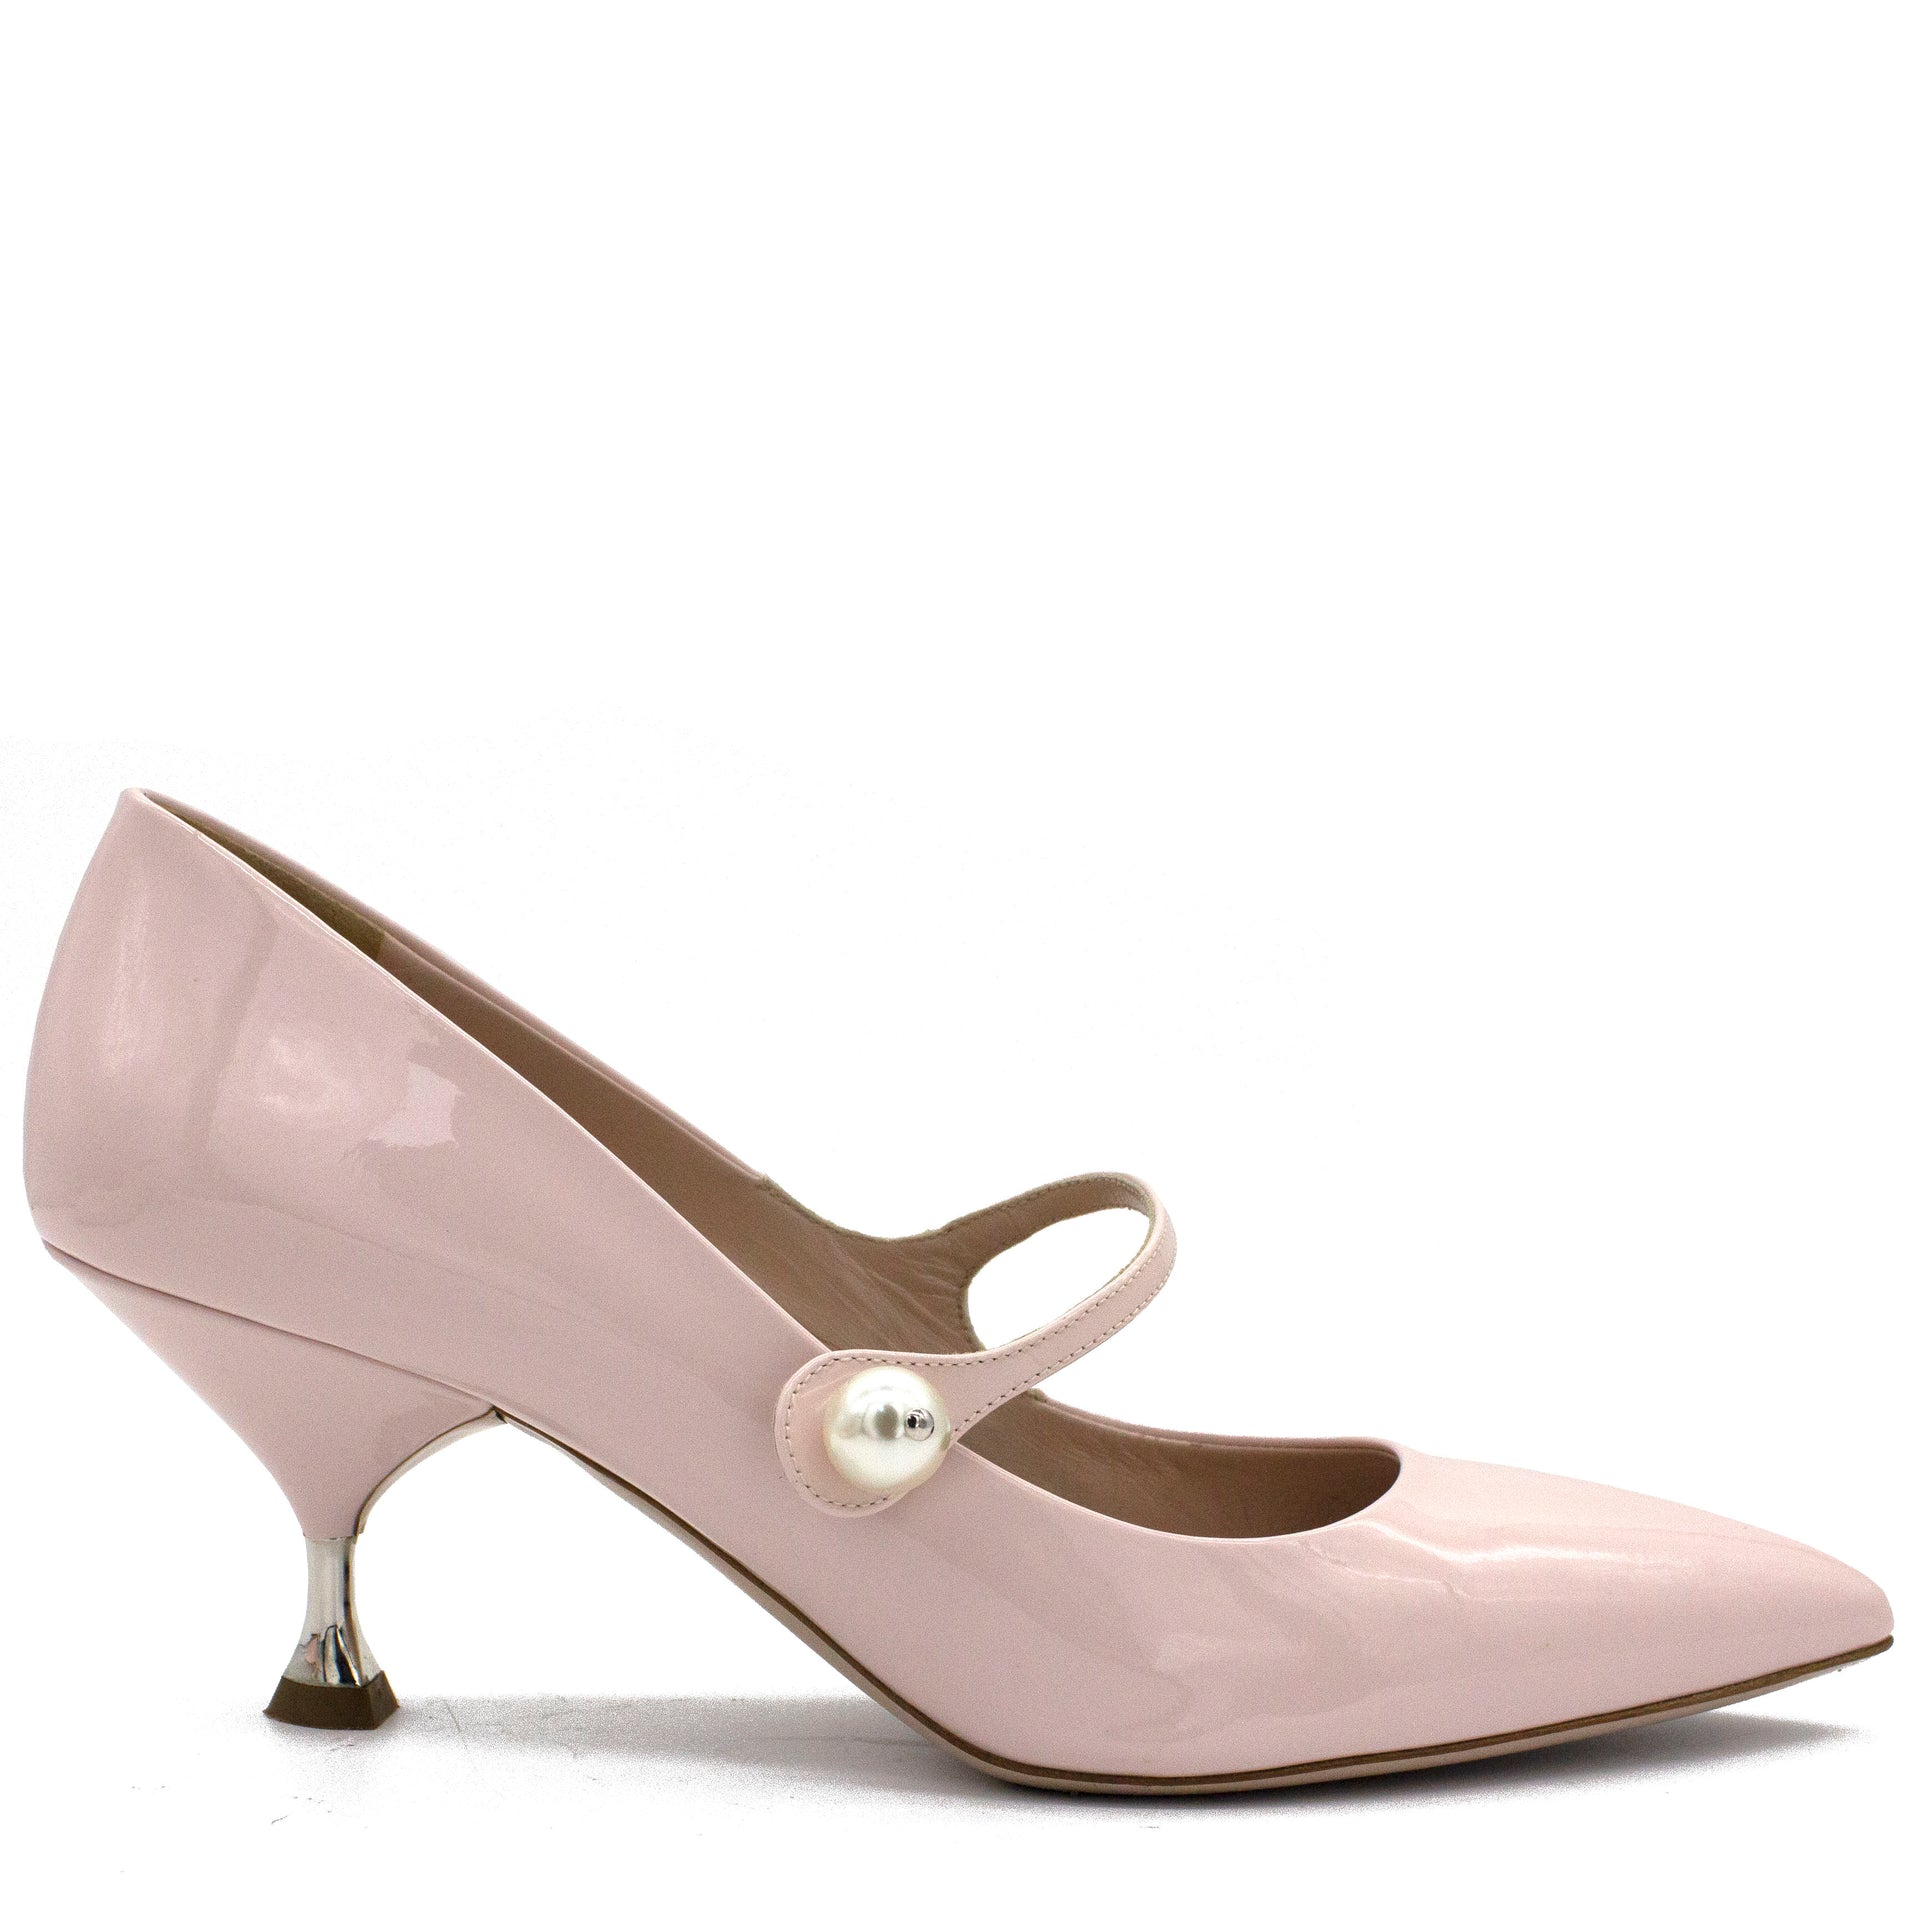 Faux Pearl-embellished Patent-leather Mary Jane Pumps